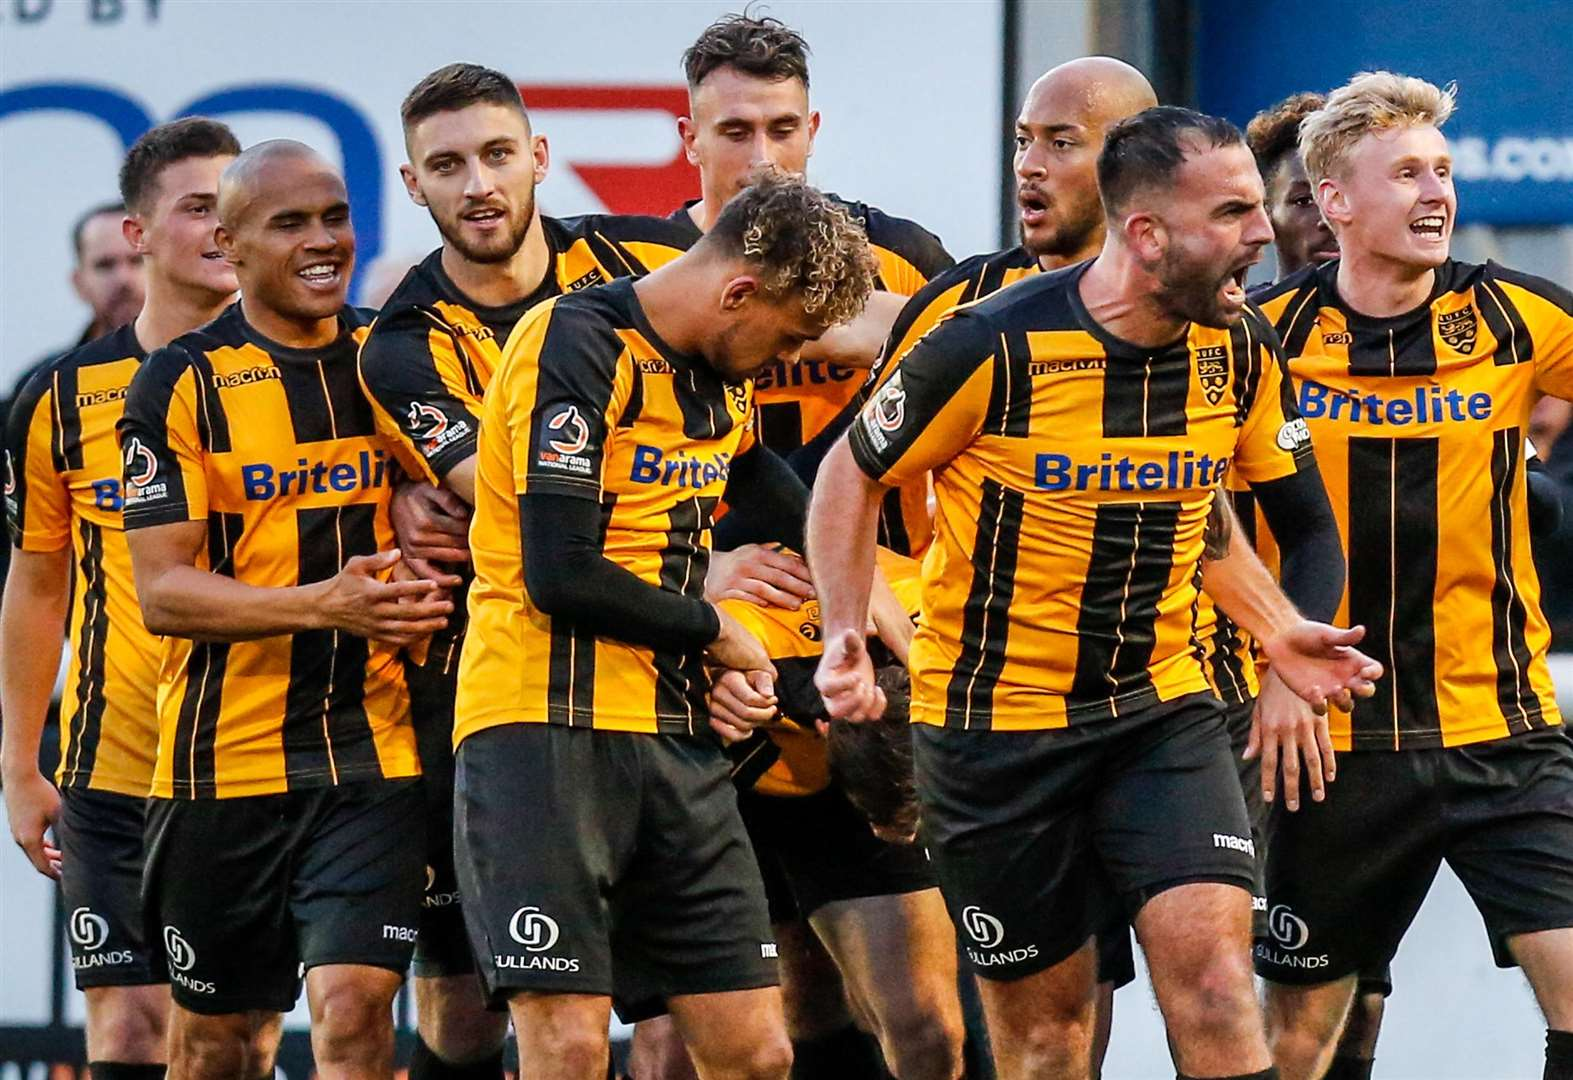 Maidstone v Macclesfield - top 10 pictures